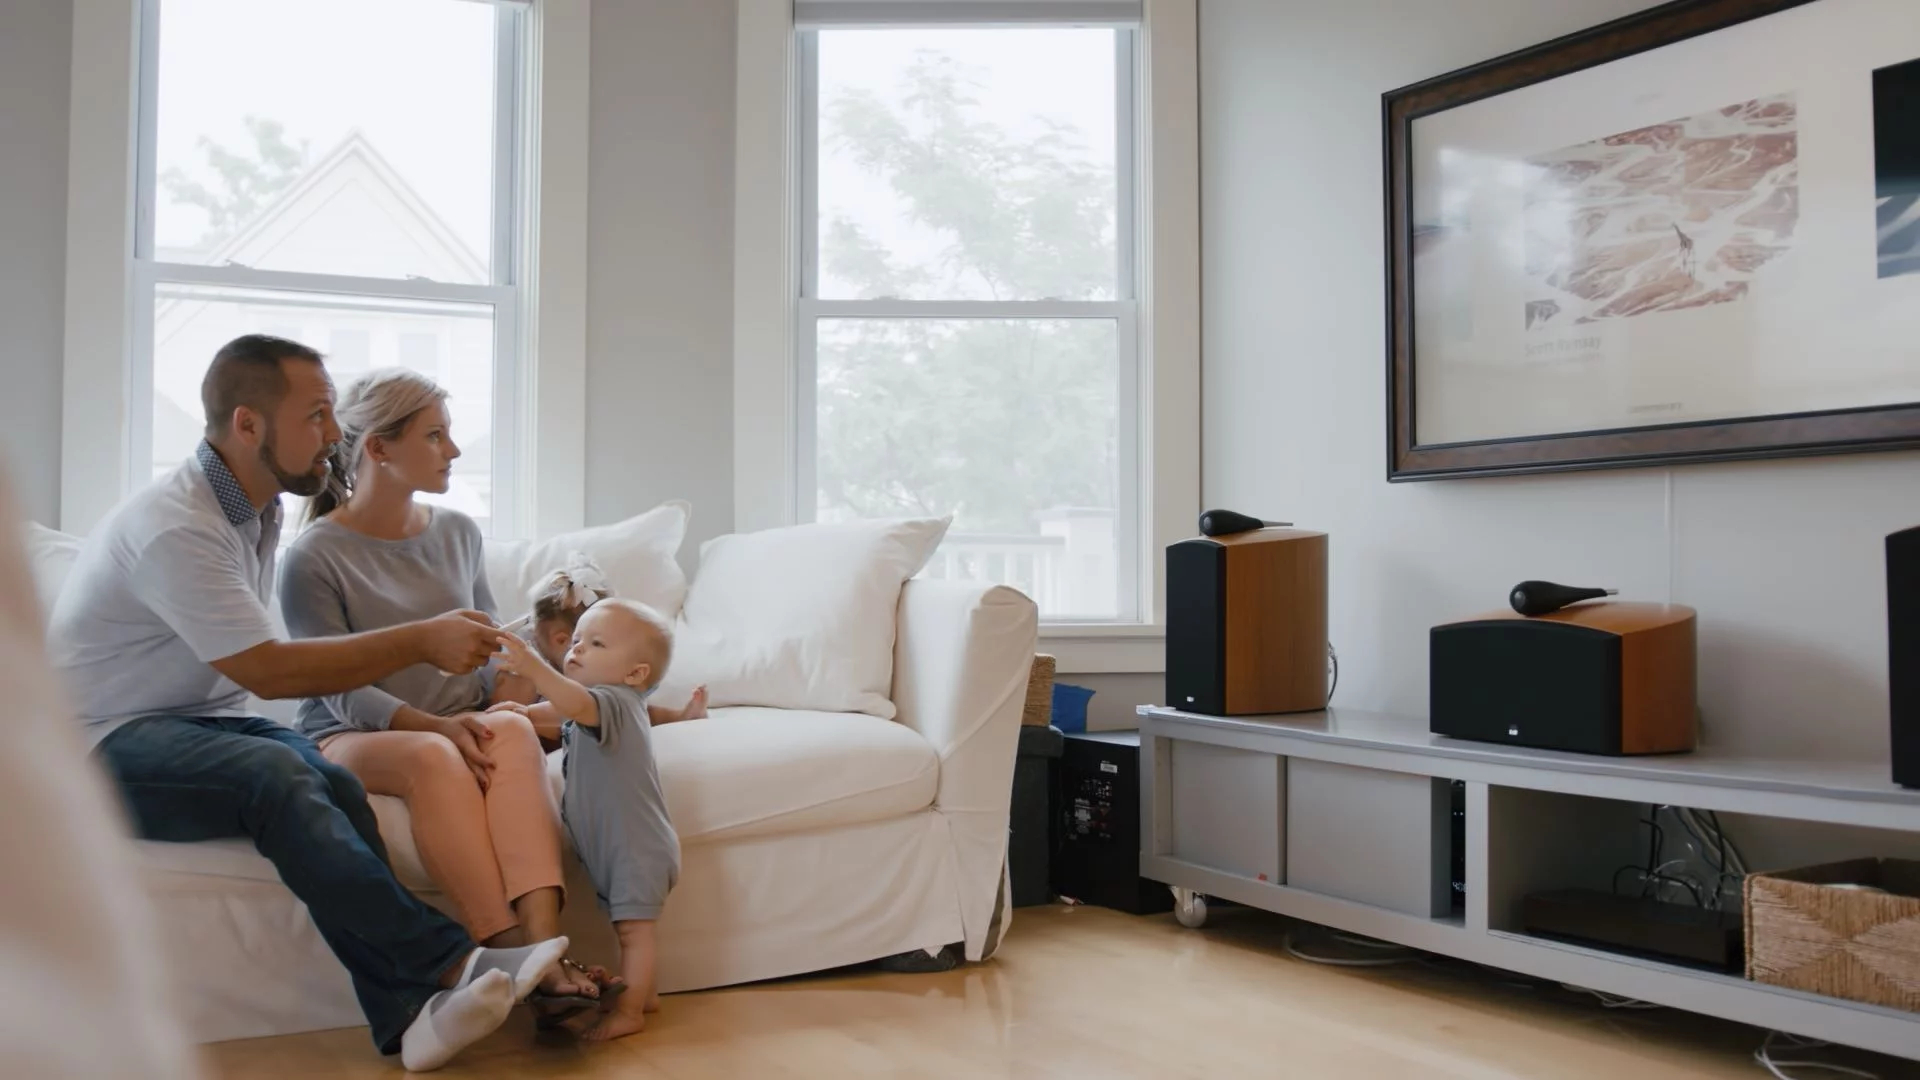 A Comprehensive Review Of Samsung The Frame Tv My Decorative